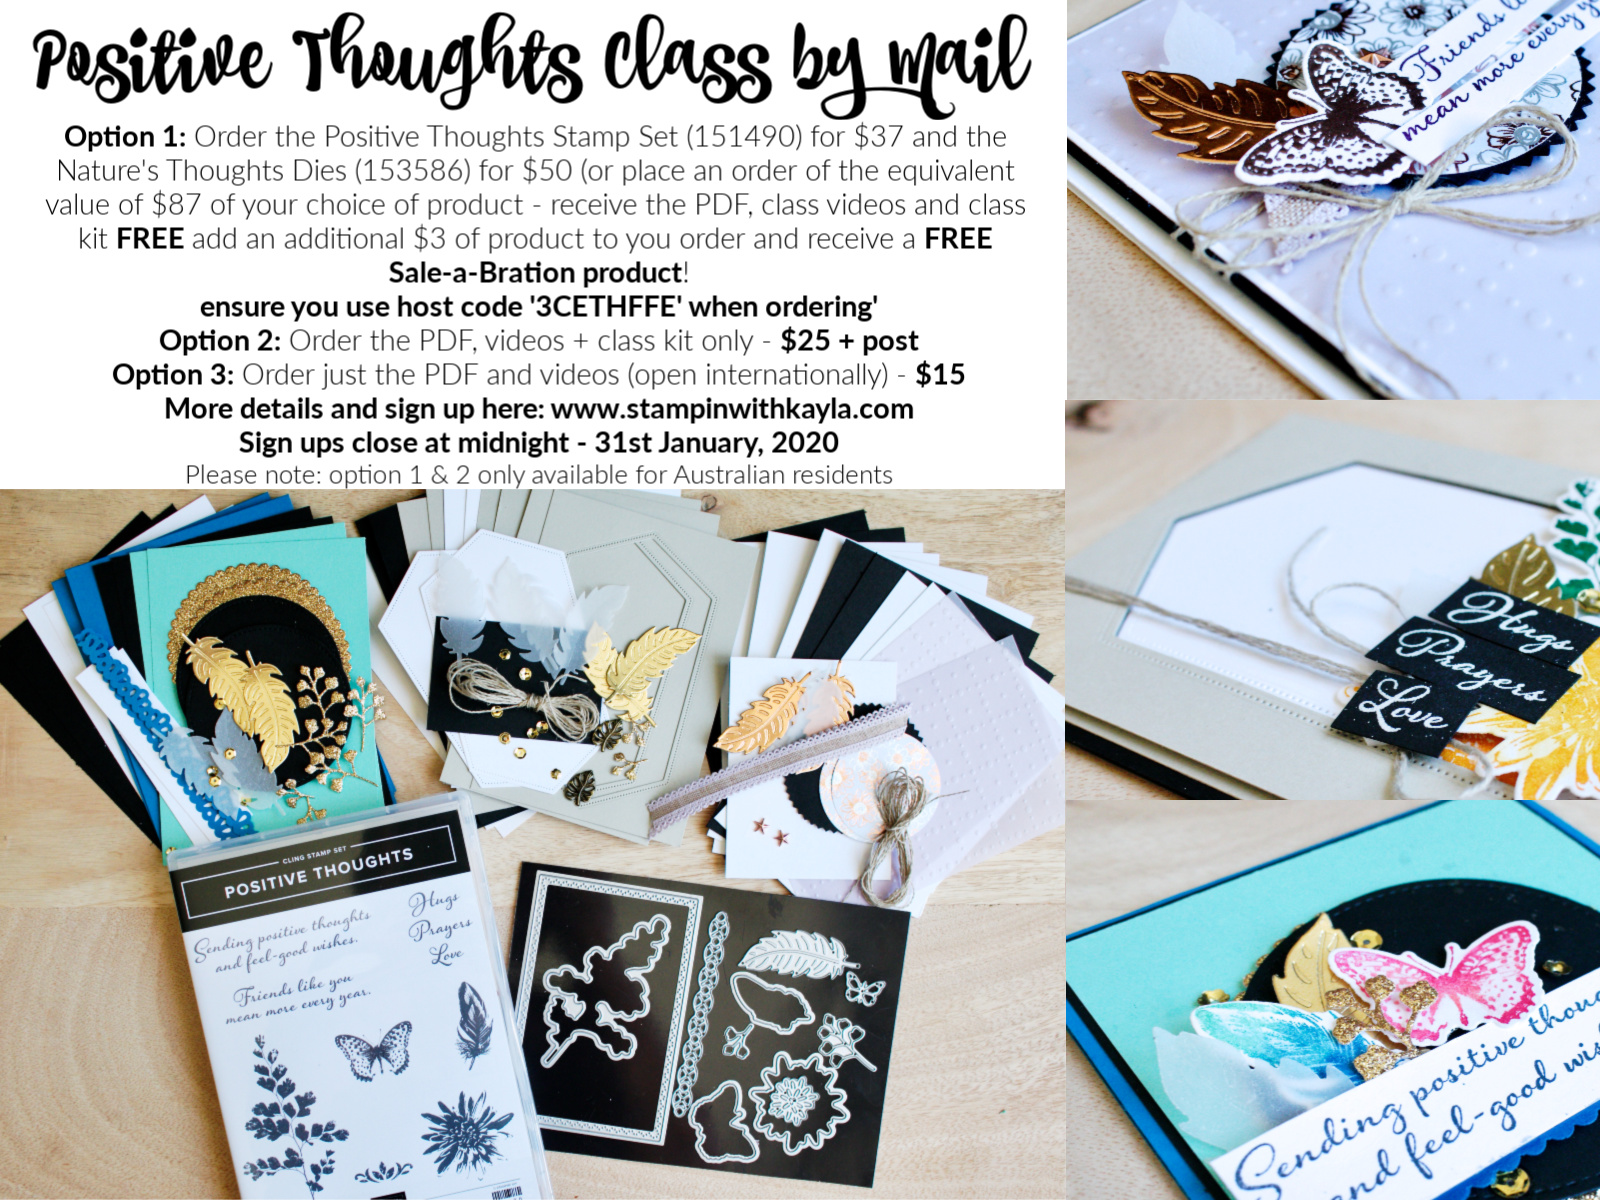 Positive Thoughts ~ Class by Mail/Online